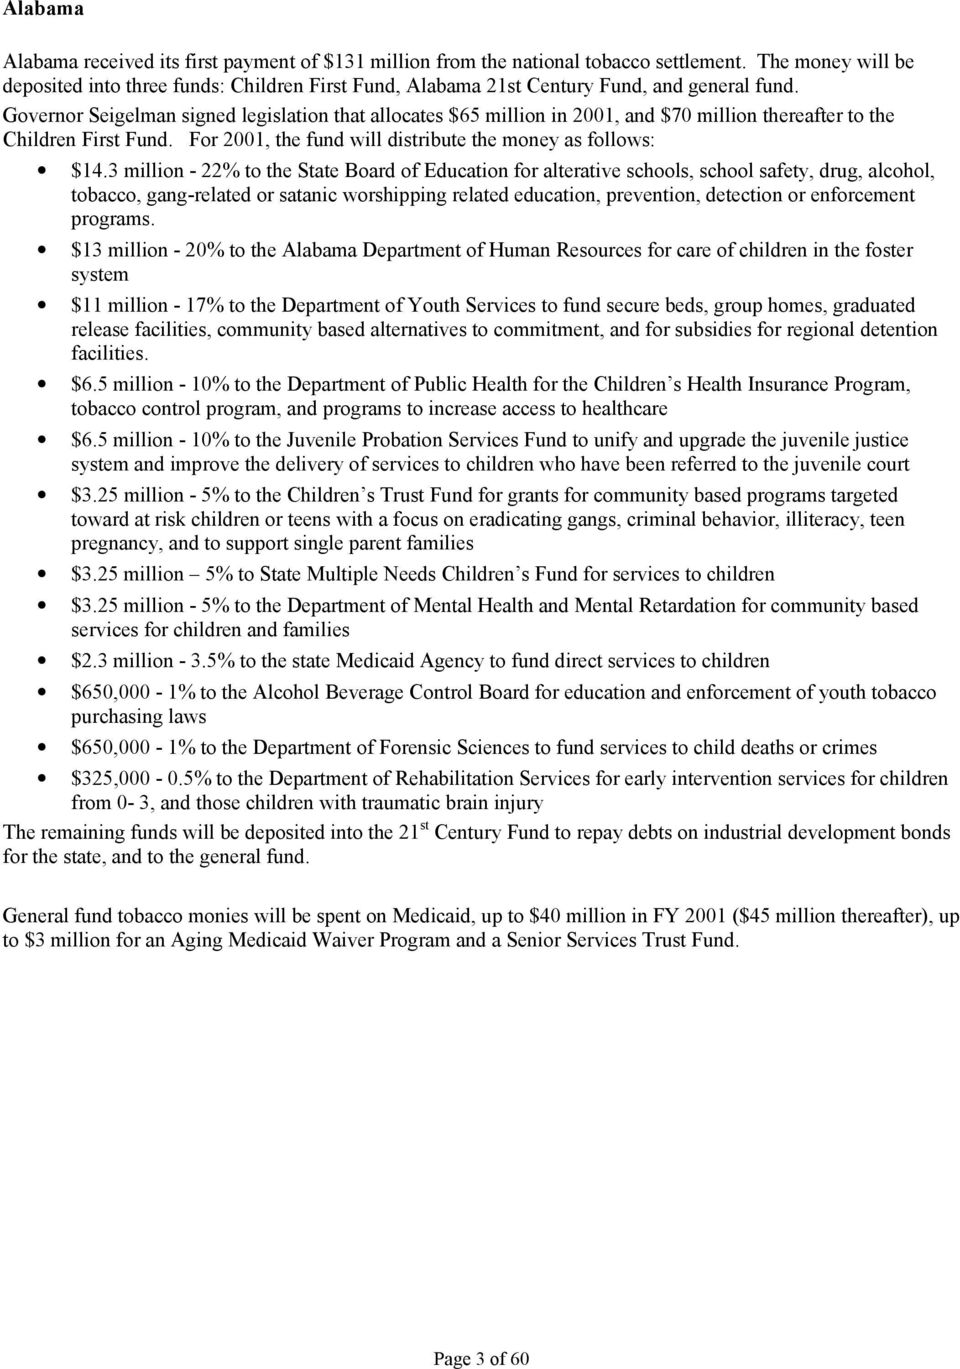 Governor Seigelman signed legislation that allocates $65 million in 2001, and $70 million thereafter to the Children First Fund. For 2001, the fund will distribute the money as follows: $14.